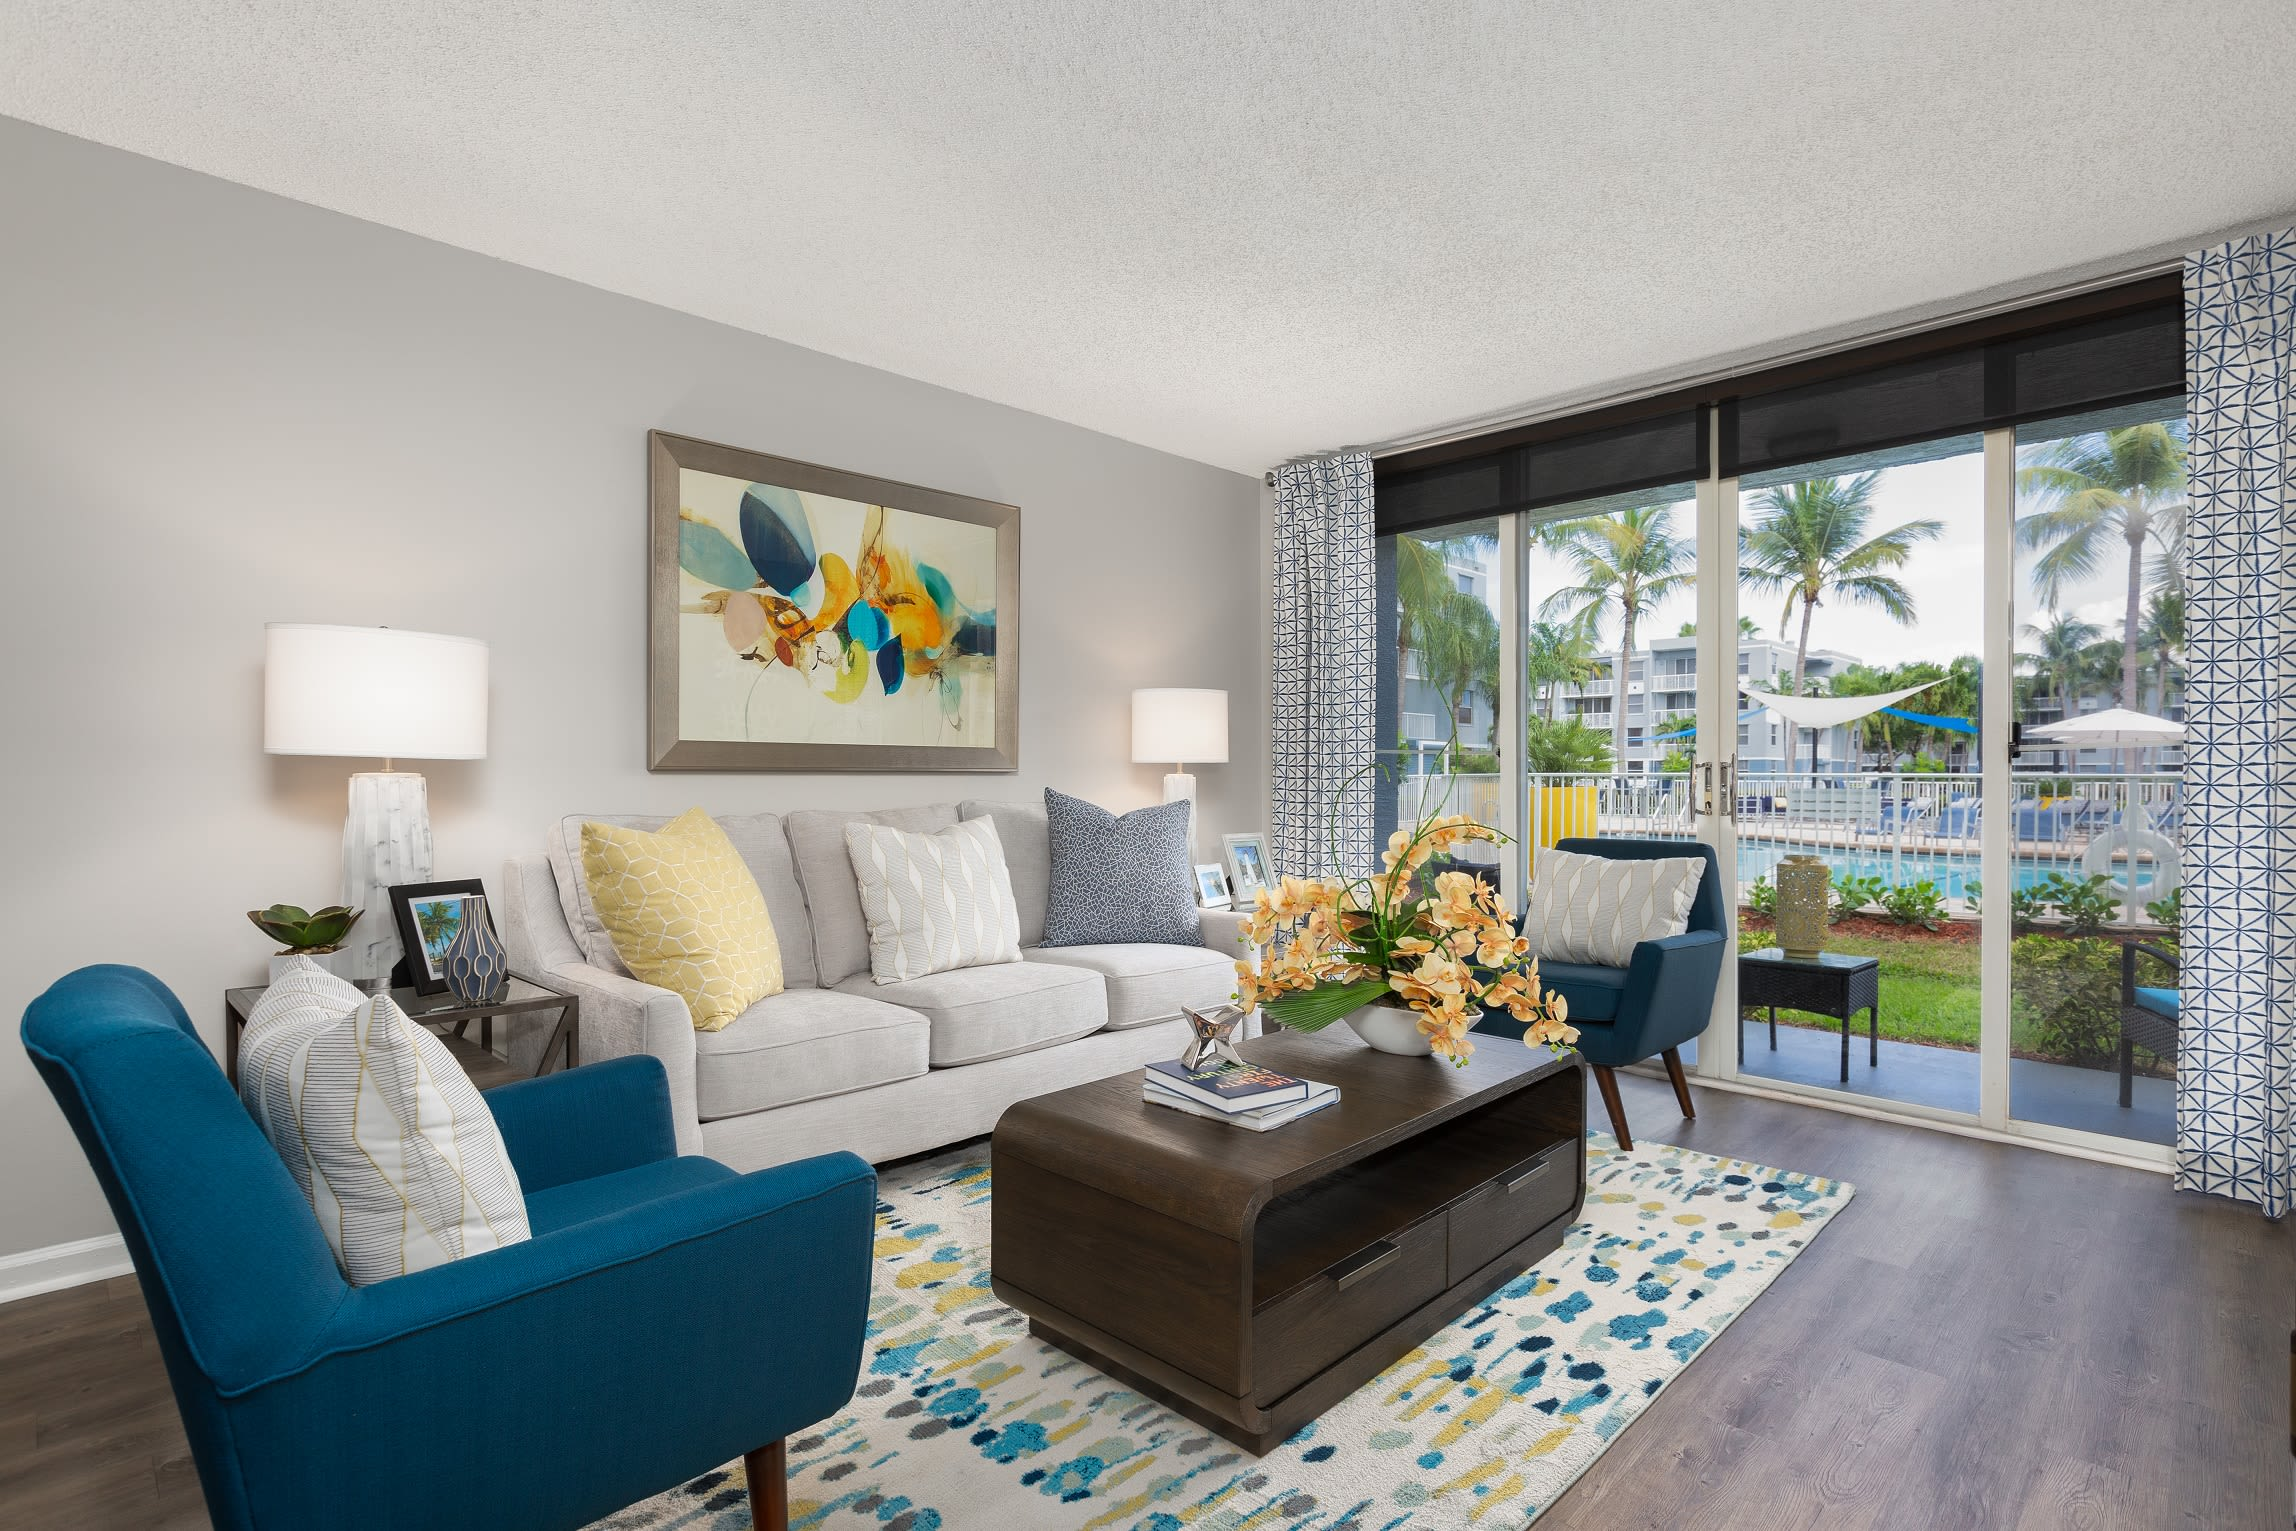 Beach Walk at Sheridan offers amazing apartment homes in Florida